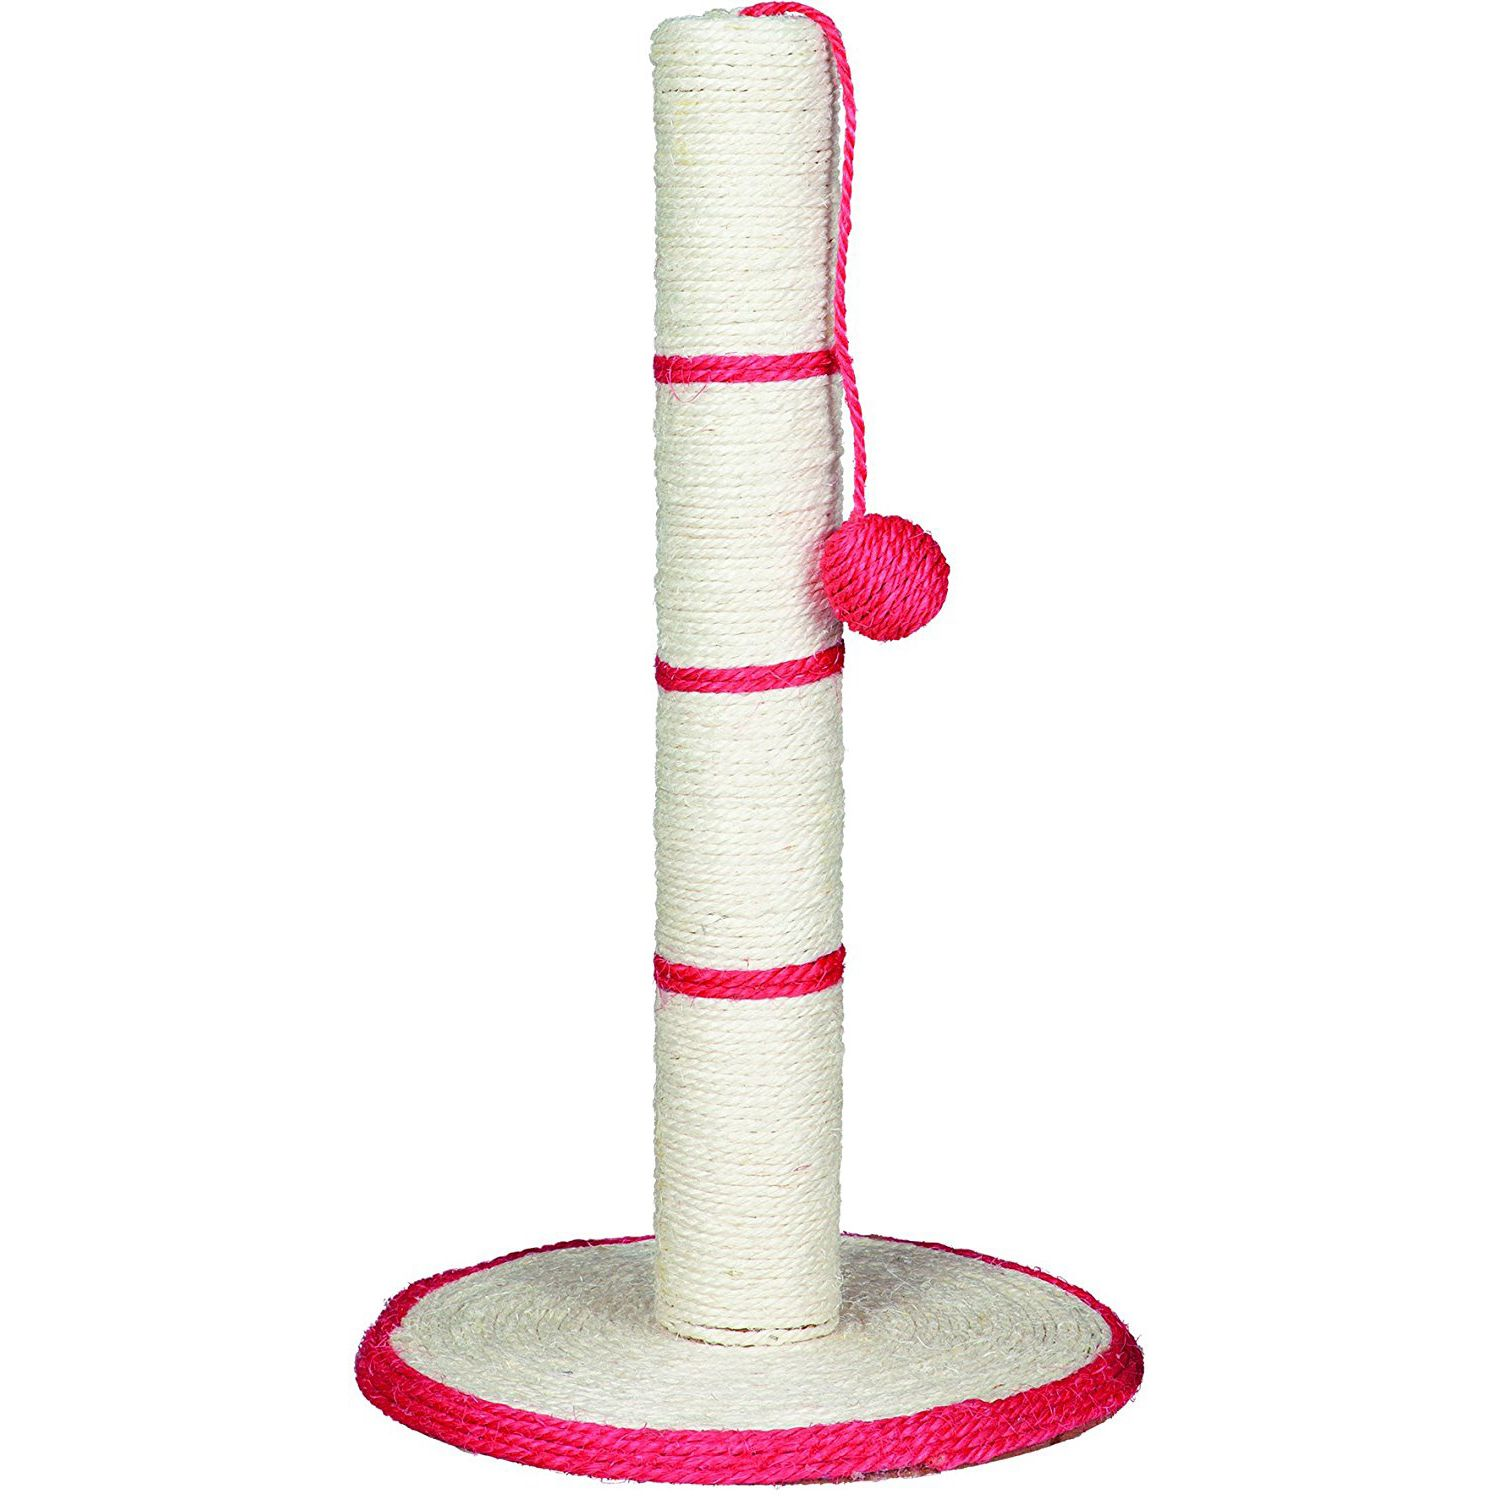 Image 2 - Cat Tree   Pole Scratcher with Ball (Toy) Pet Scratch Sisal Tree Furniture Protector Cat Play Toys   Random Color-in Cat Toys from Home & Garden